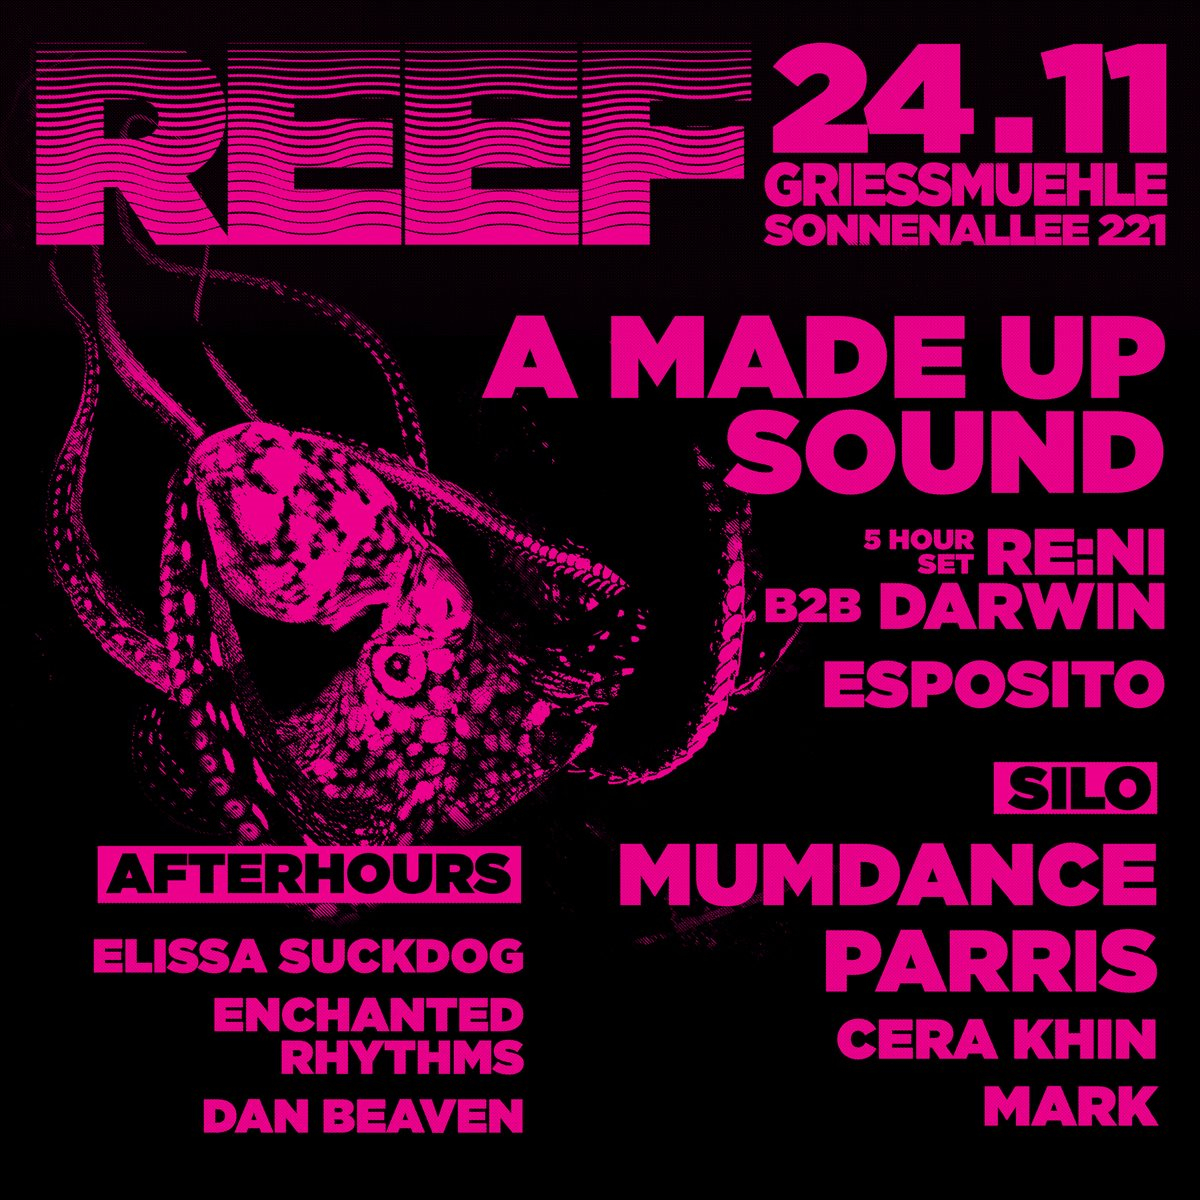 Reef with A Made Up Sound, Mumdance, Parris, Cera Khin & re:ni - Flyer front